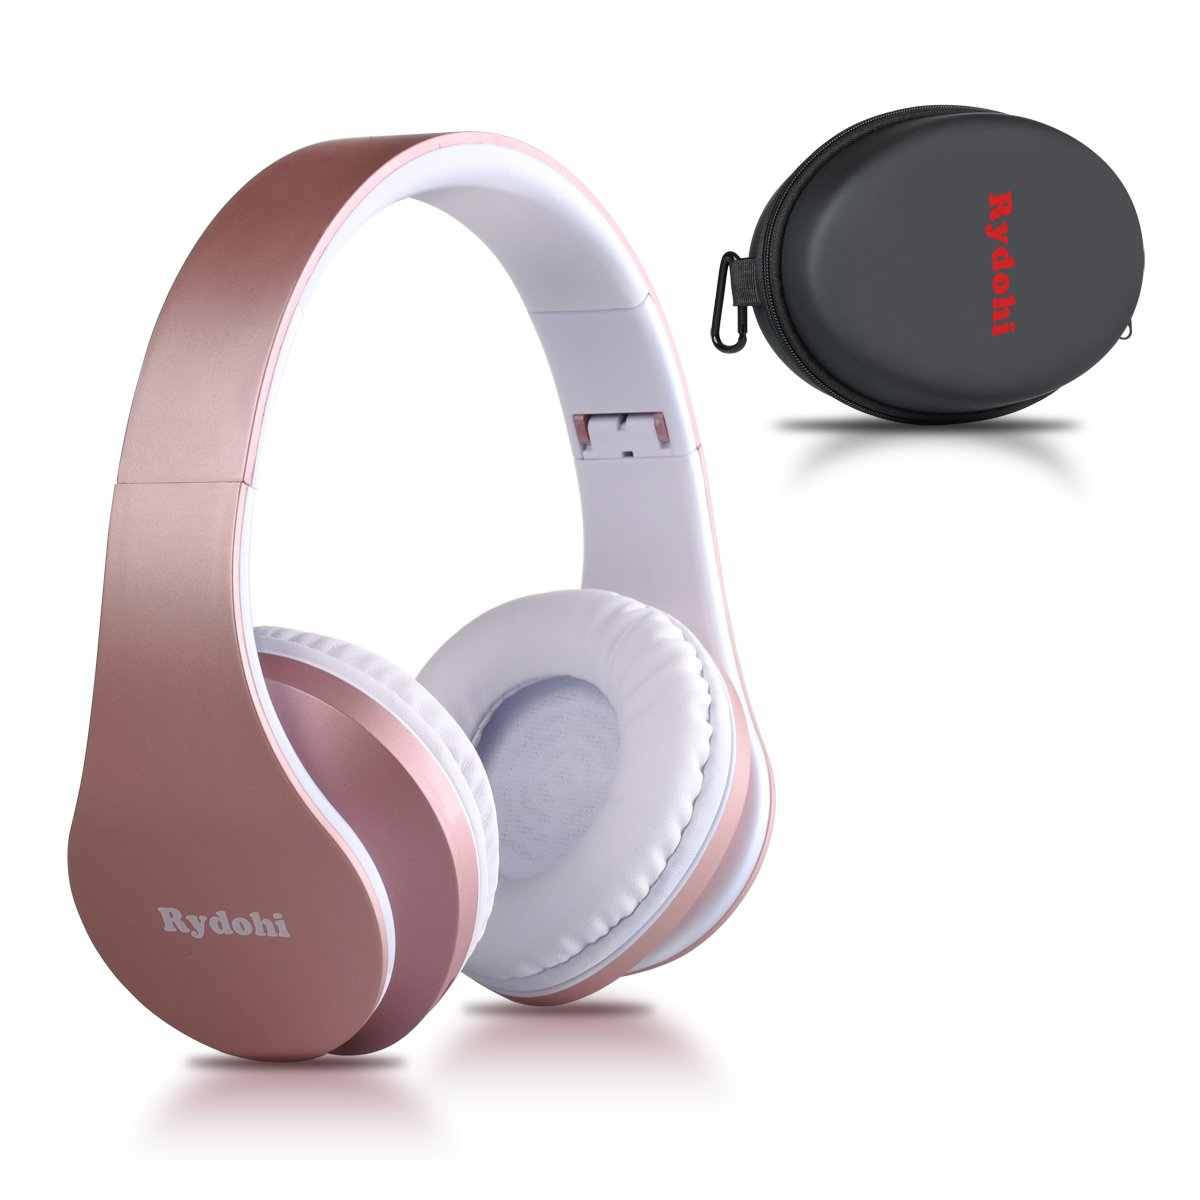 Bluetooth Headphones Over Ear, Rydohi Wireless Stereo Headset with Deep Bass, Foldable and Lightweight, Wired and Wireless Modes Built in Mic for Cell Phone, TV, PC- Rose Gold by Rydohi